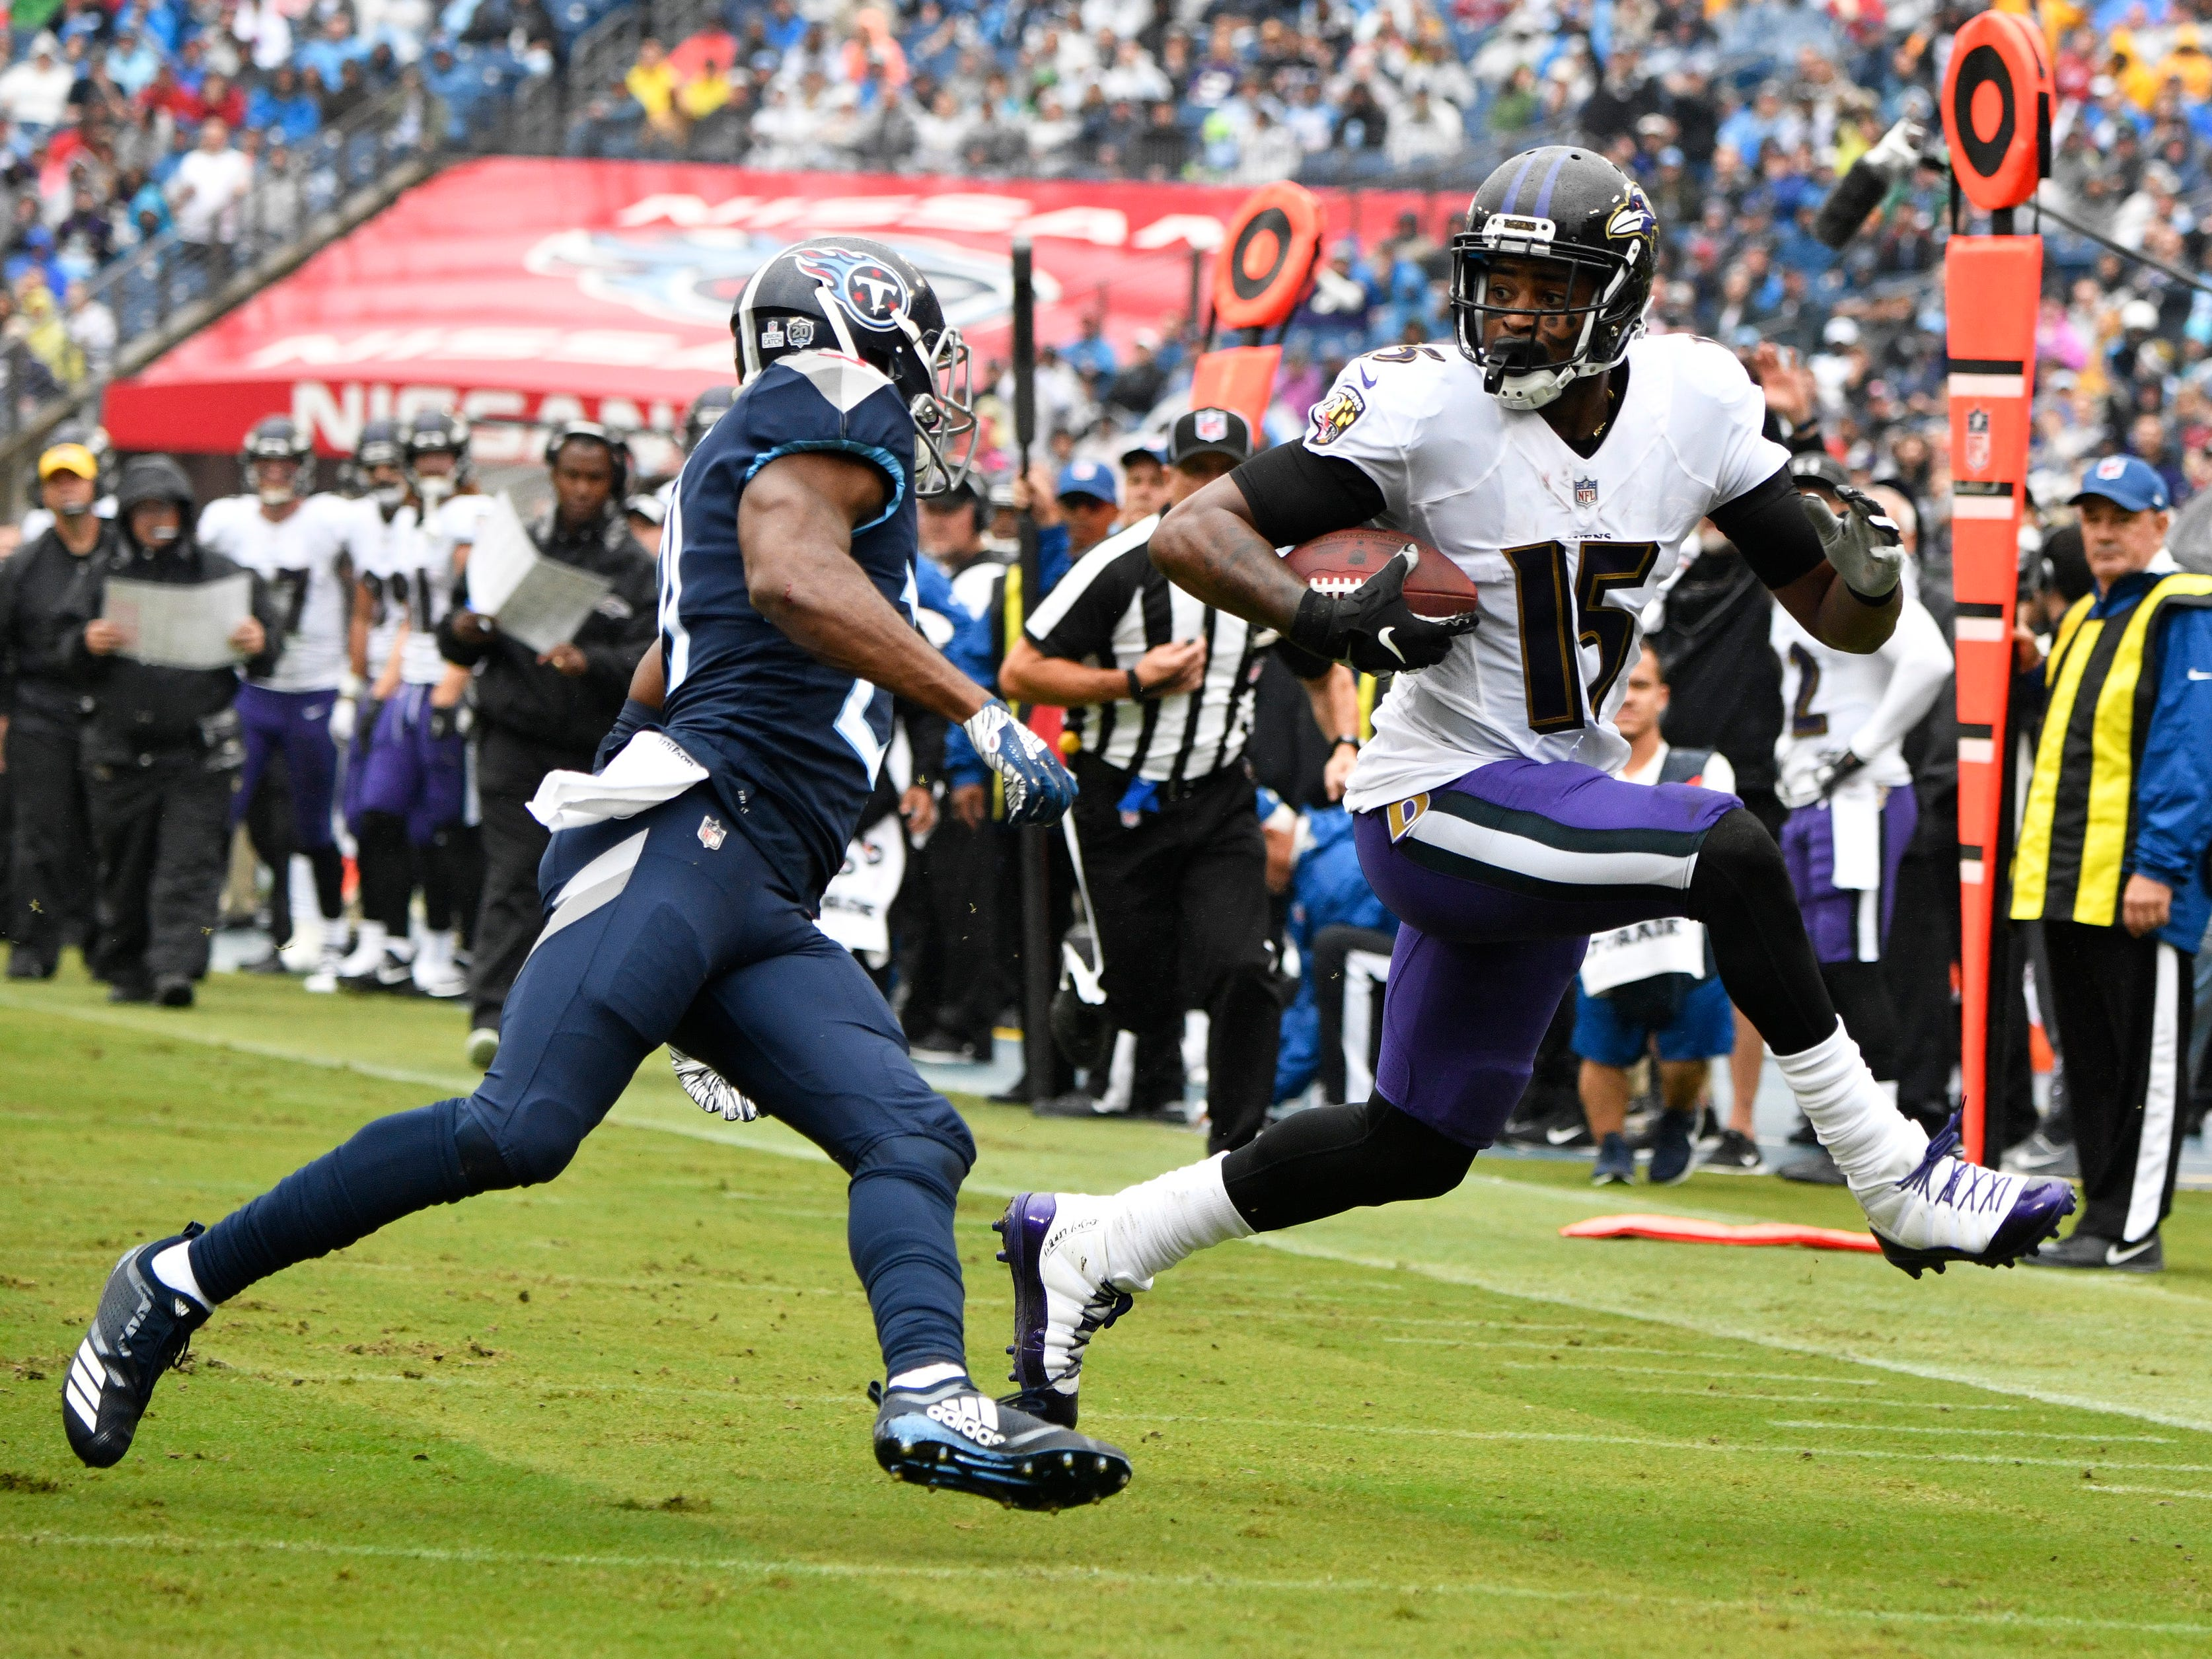 Ravens wide receiver Michael Crabtree (15) gains yards defended by Titans cornerback Malcolm Butler (21) in the first half at Nissan Stadium Sunday, Oct. 14, 2018, in Nashville, Tenn.